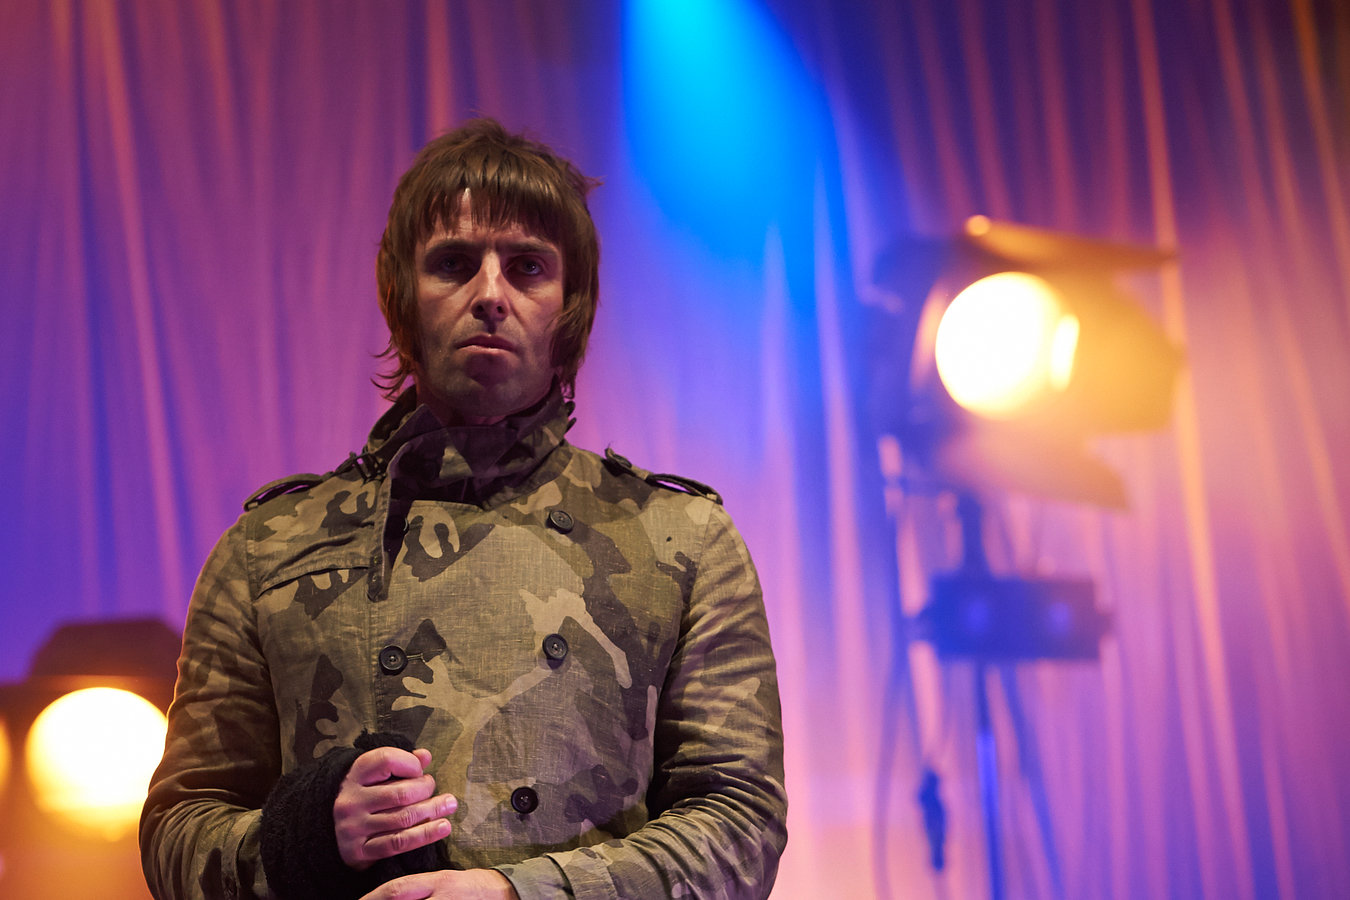 Liam Gallagher-BeadyEye